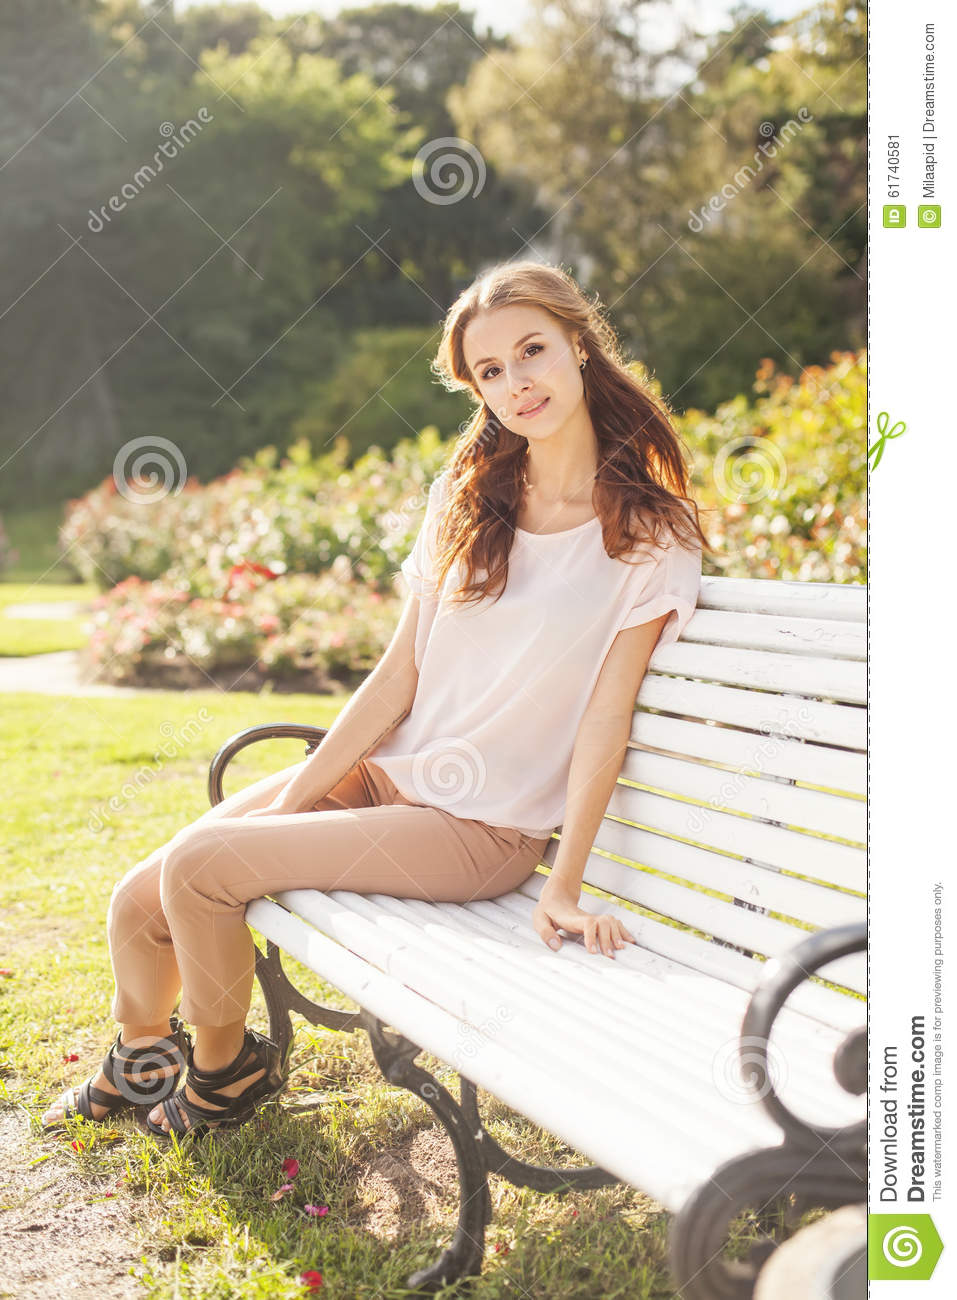 Girl Sitting In The Garden Stock Image Image Of Beautiful -6130